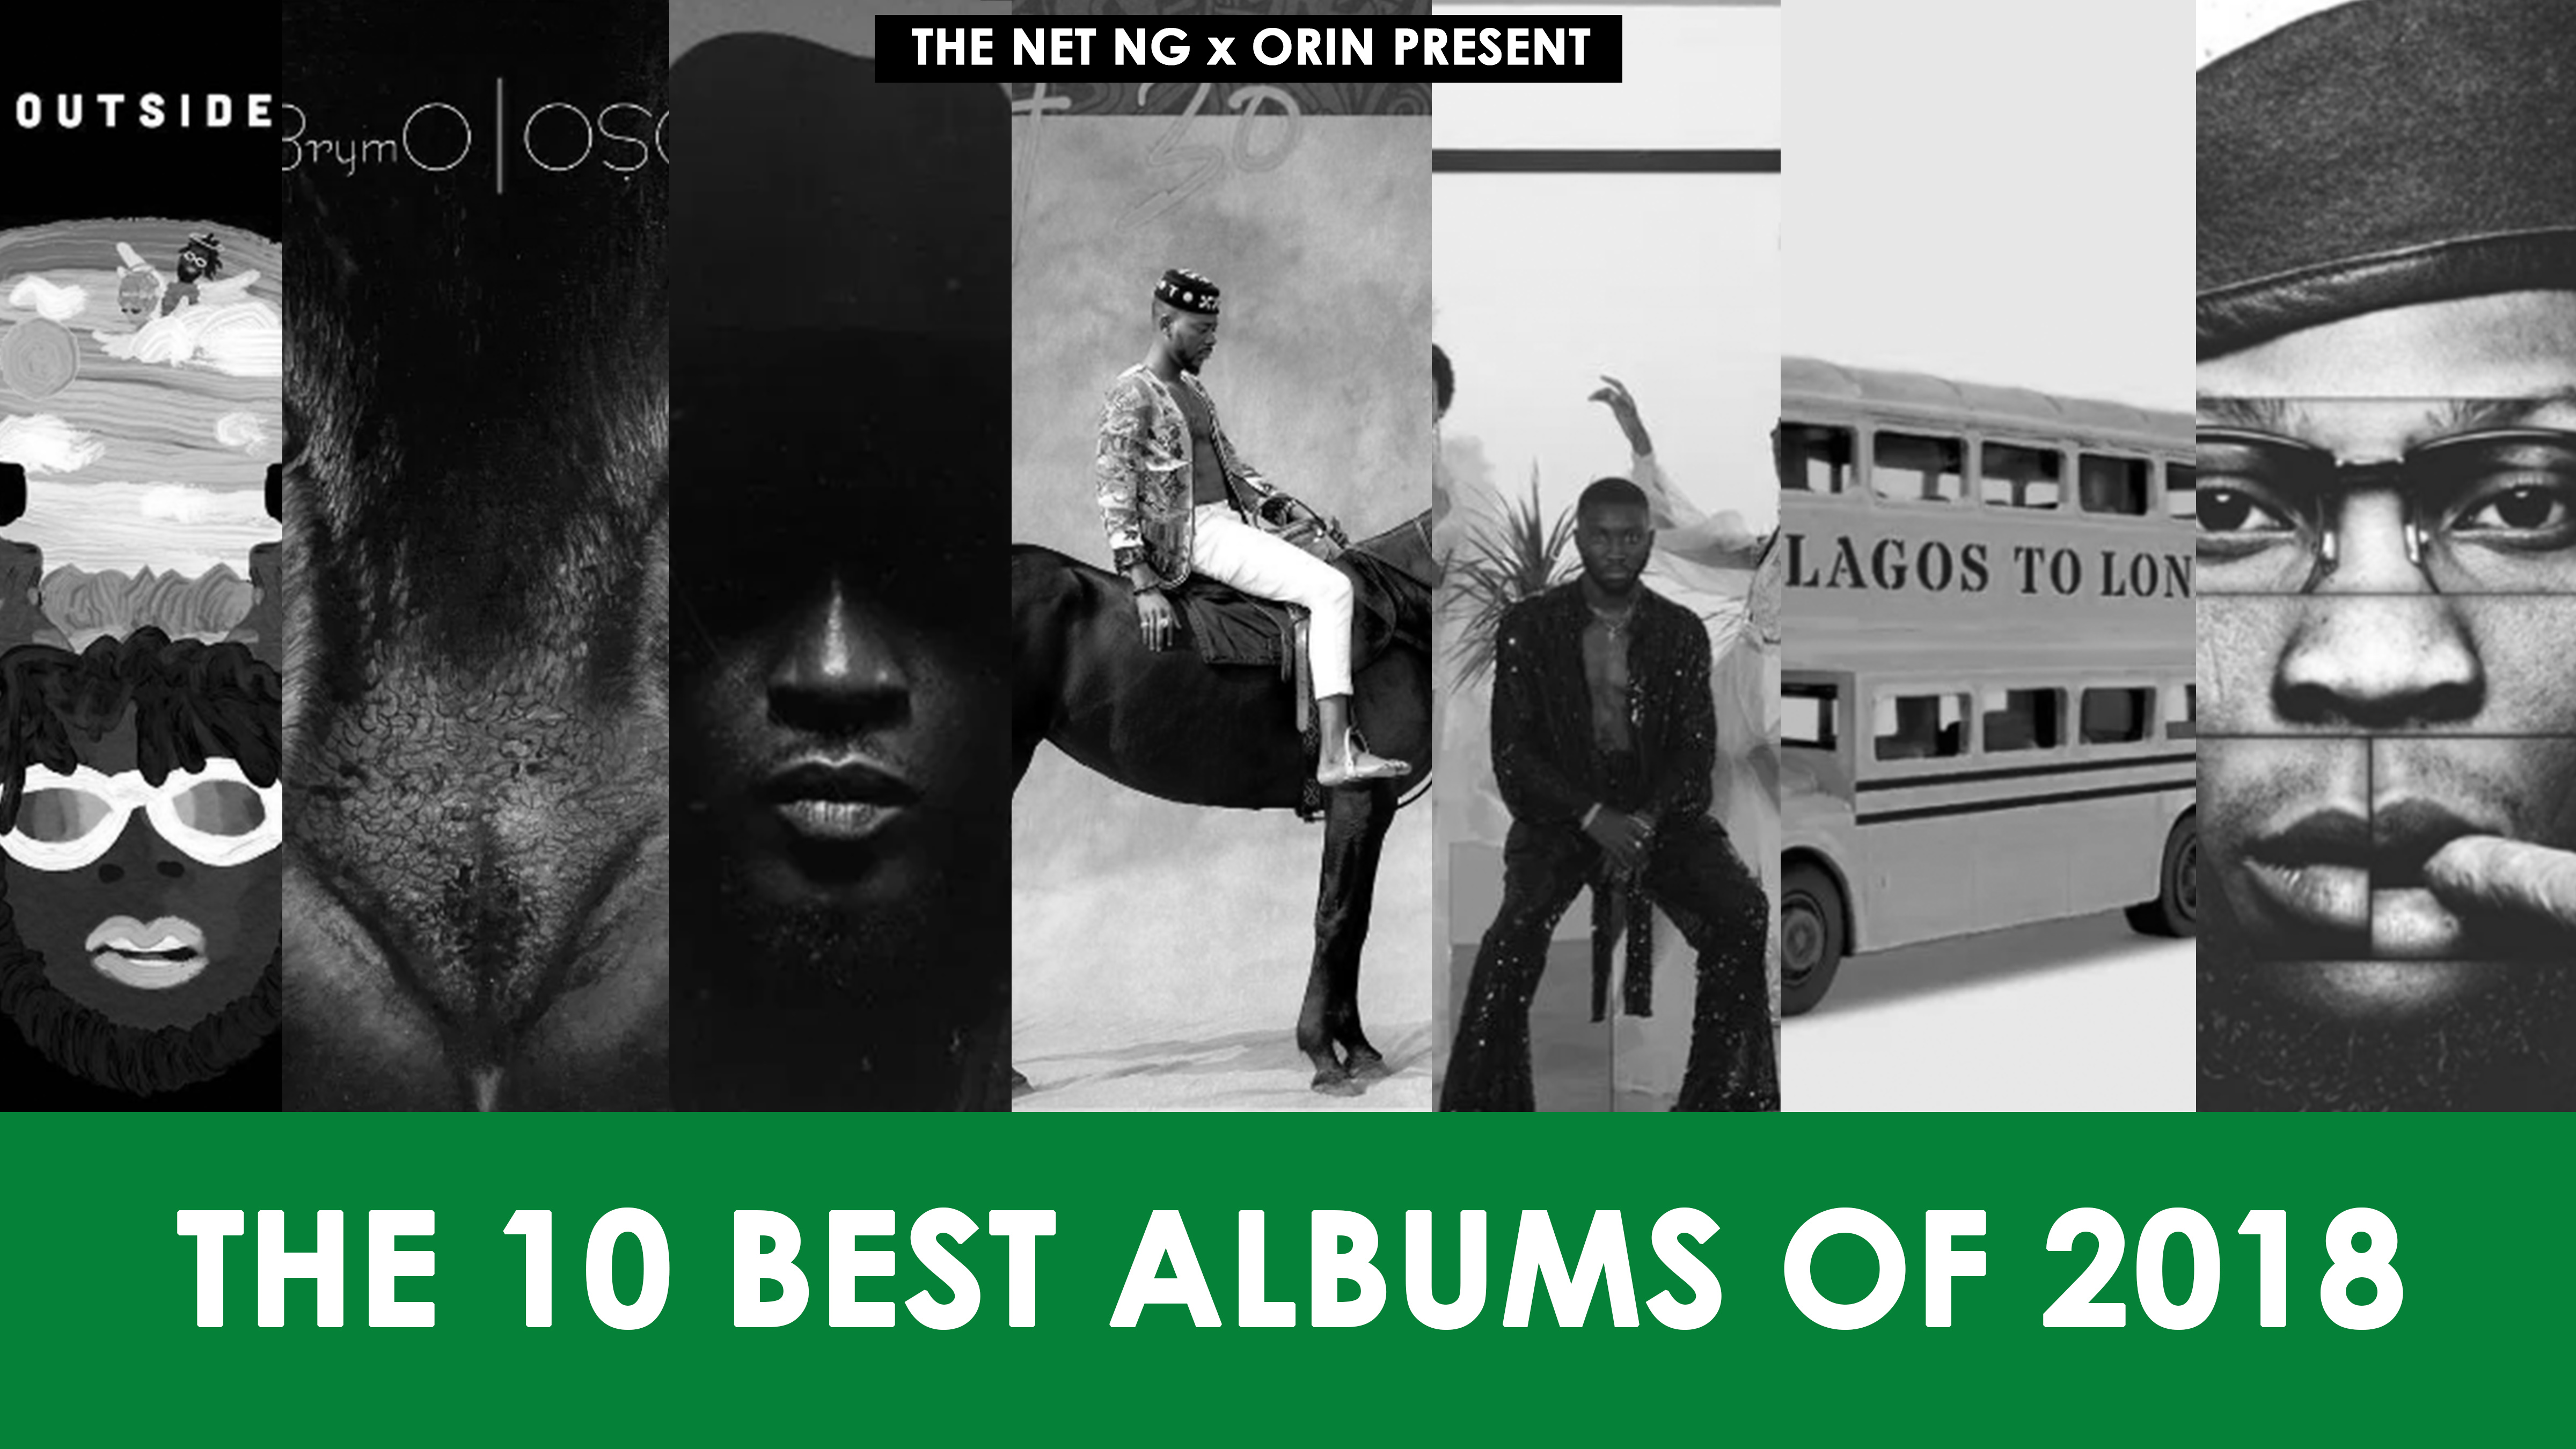 Ranking The 10 Best Albums Of 2018 | NET List